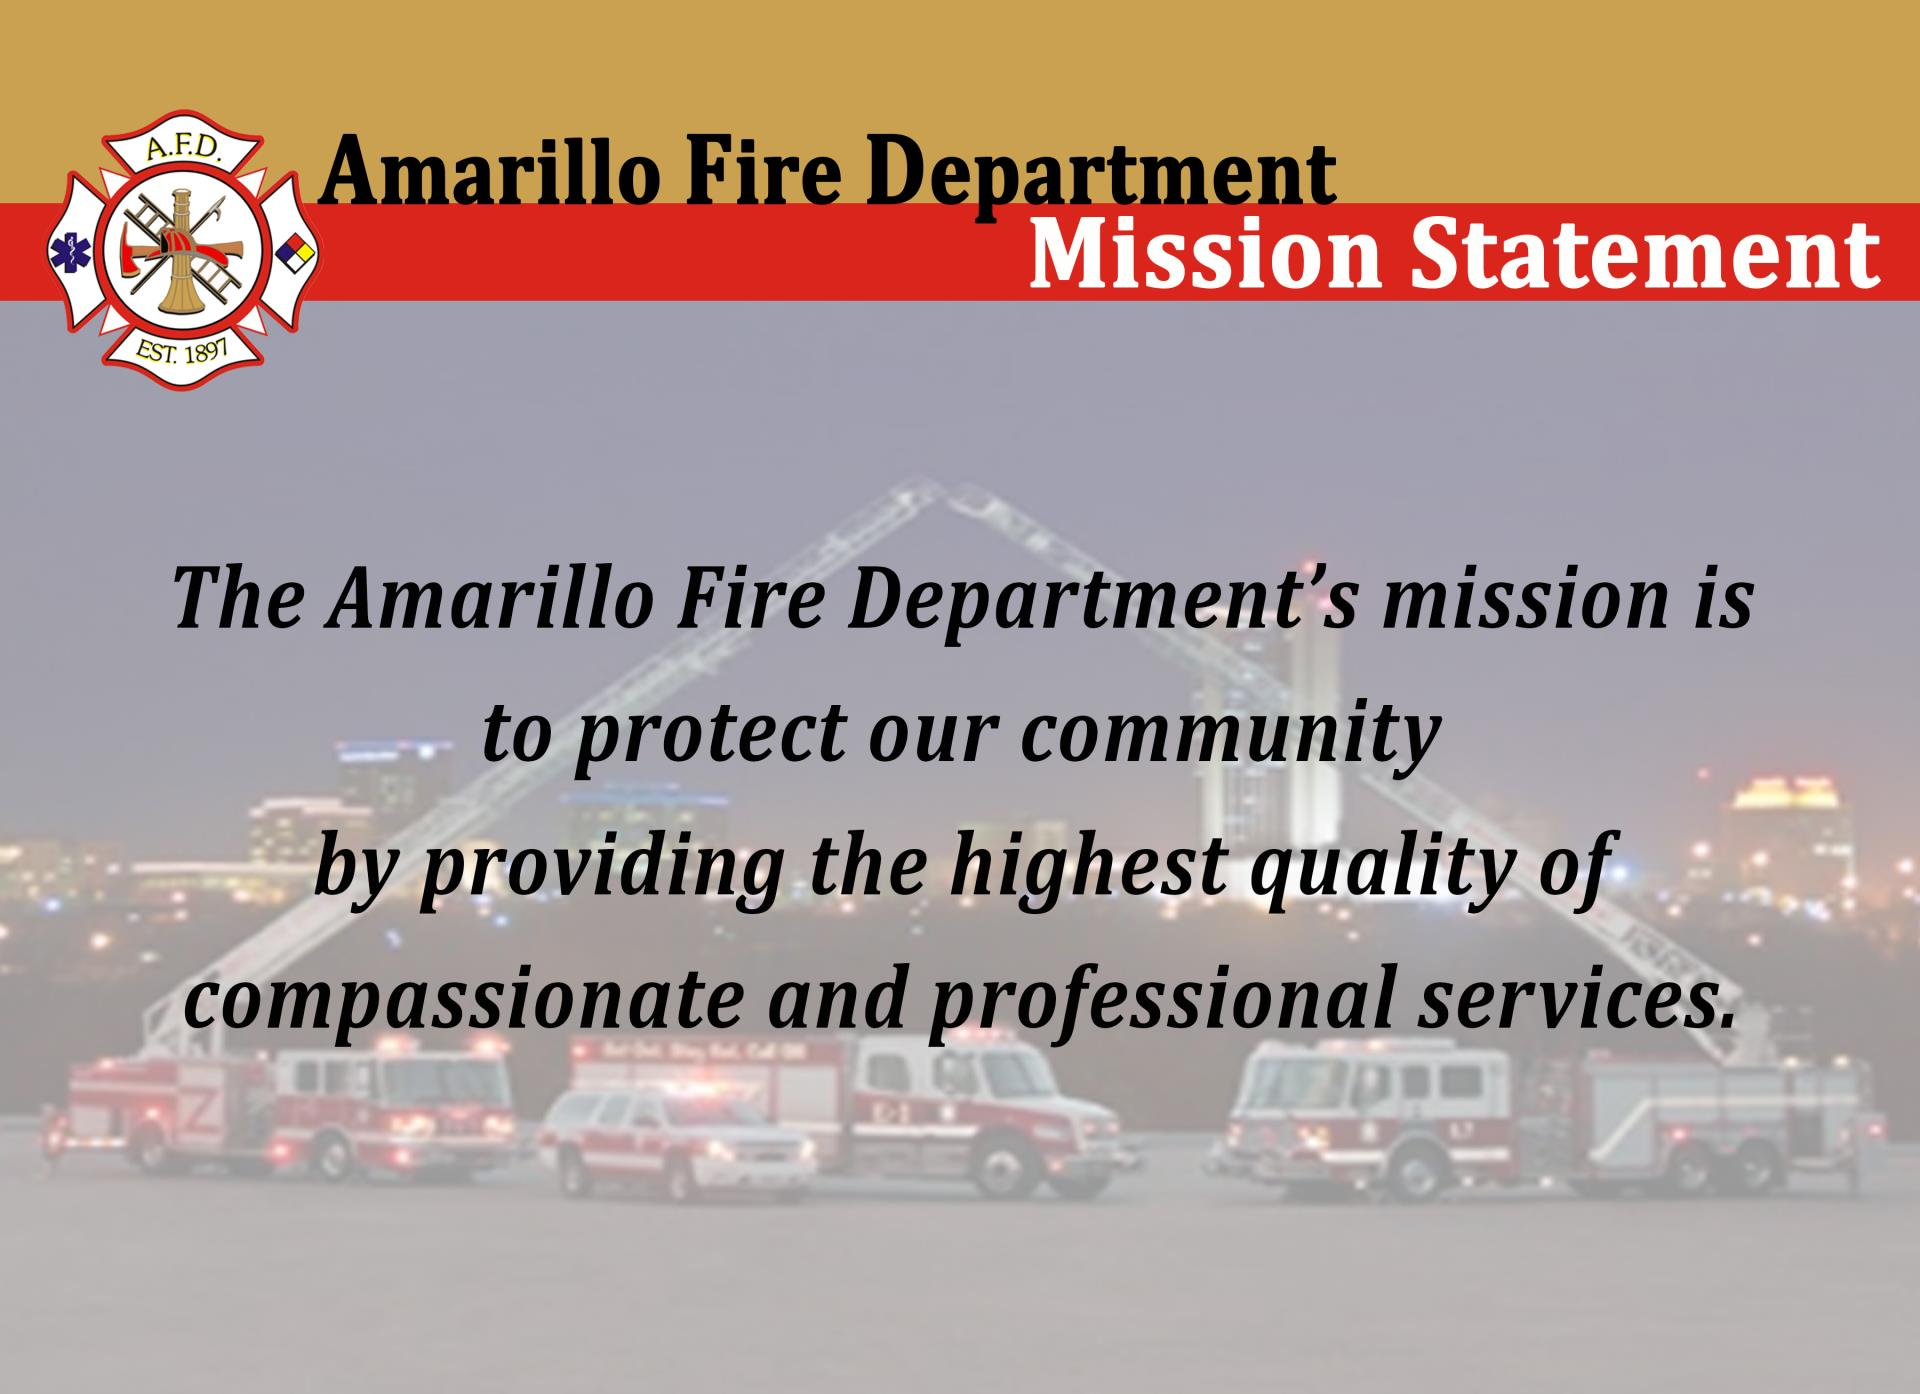 Amarillo fire department city of amarillo tx mission malvernweather Choice Image